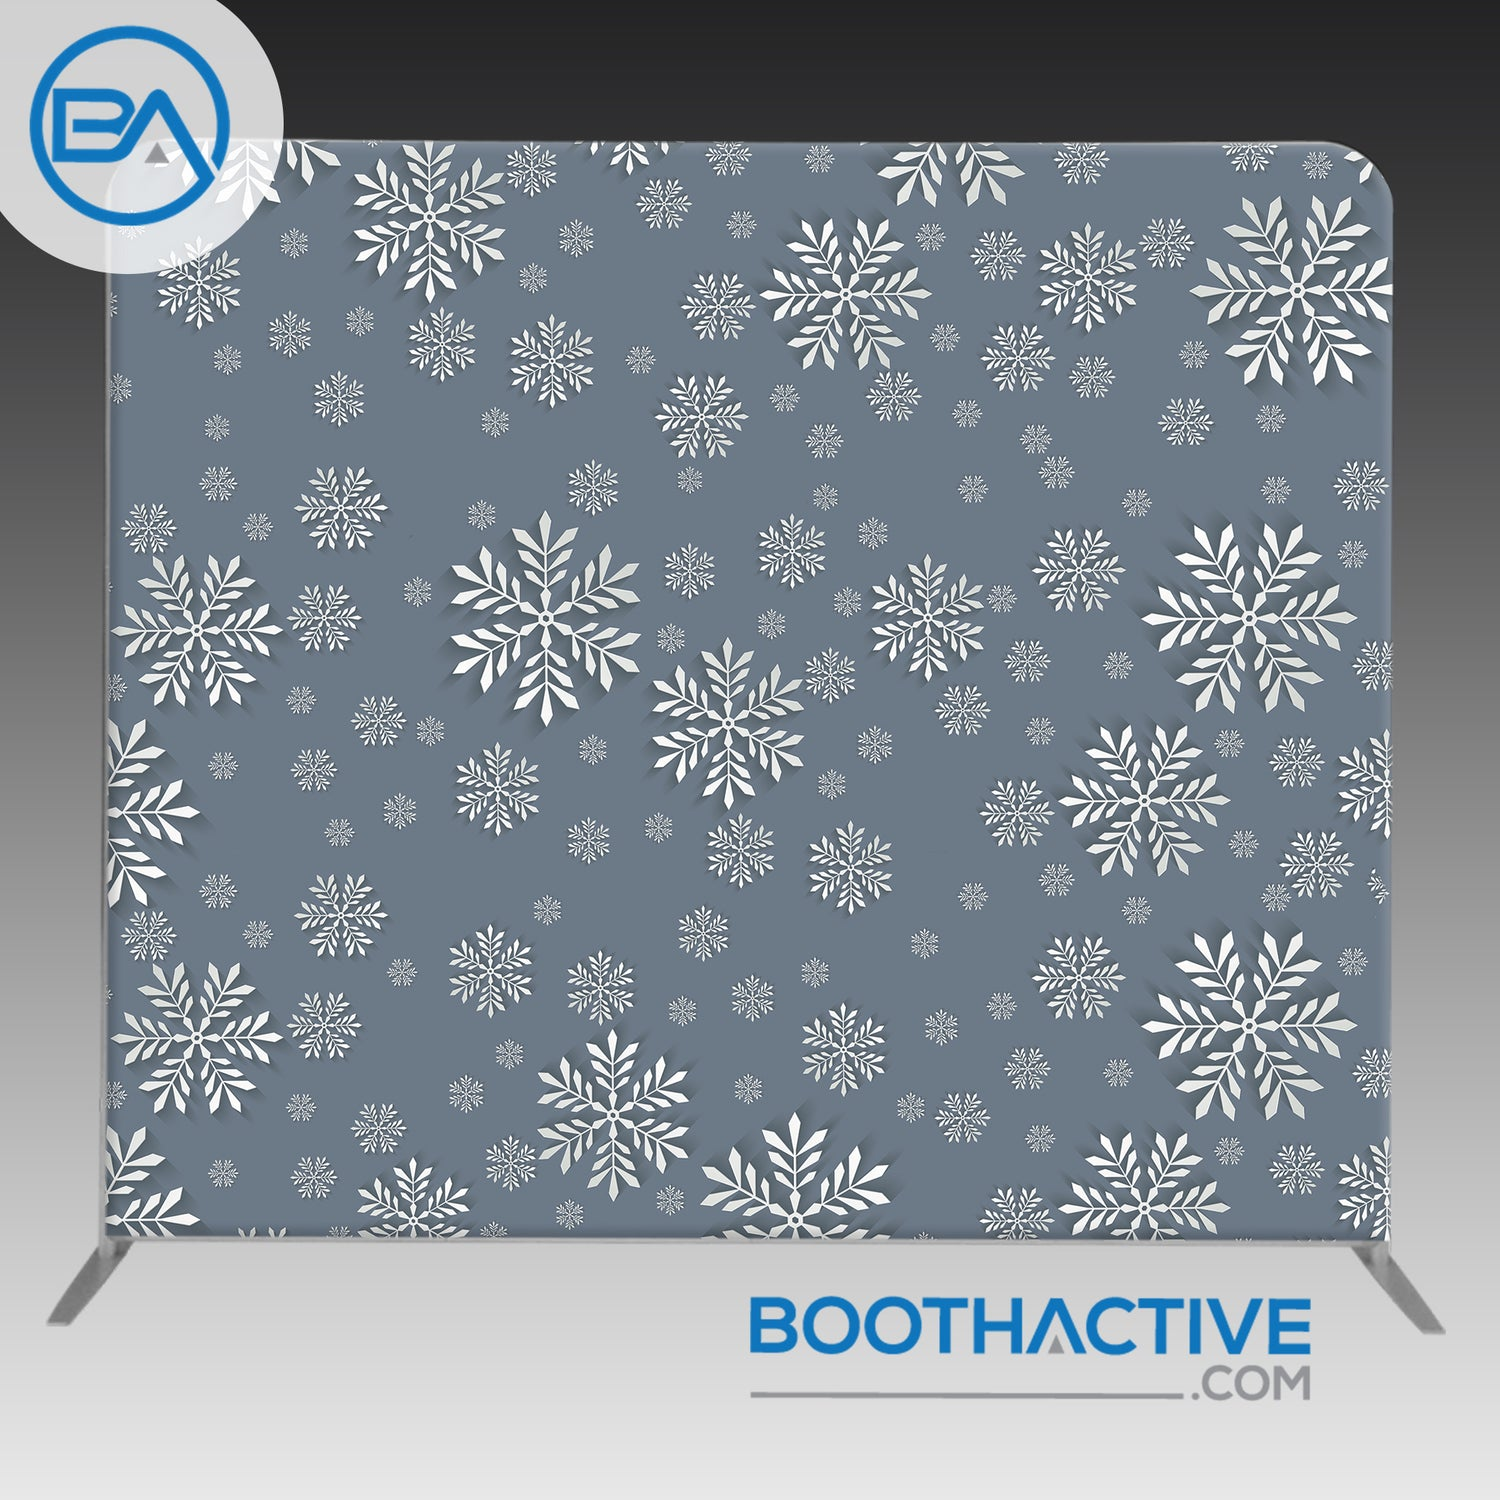 8' x 8' Backdrop - Holiday - 3D Snow - BoothActive